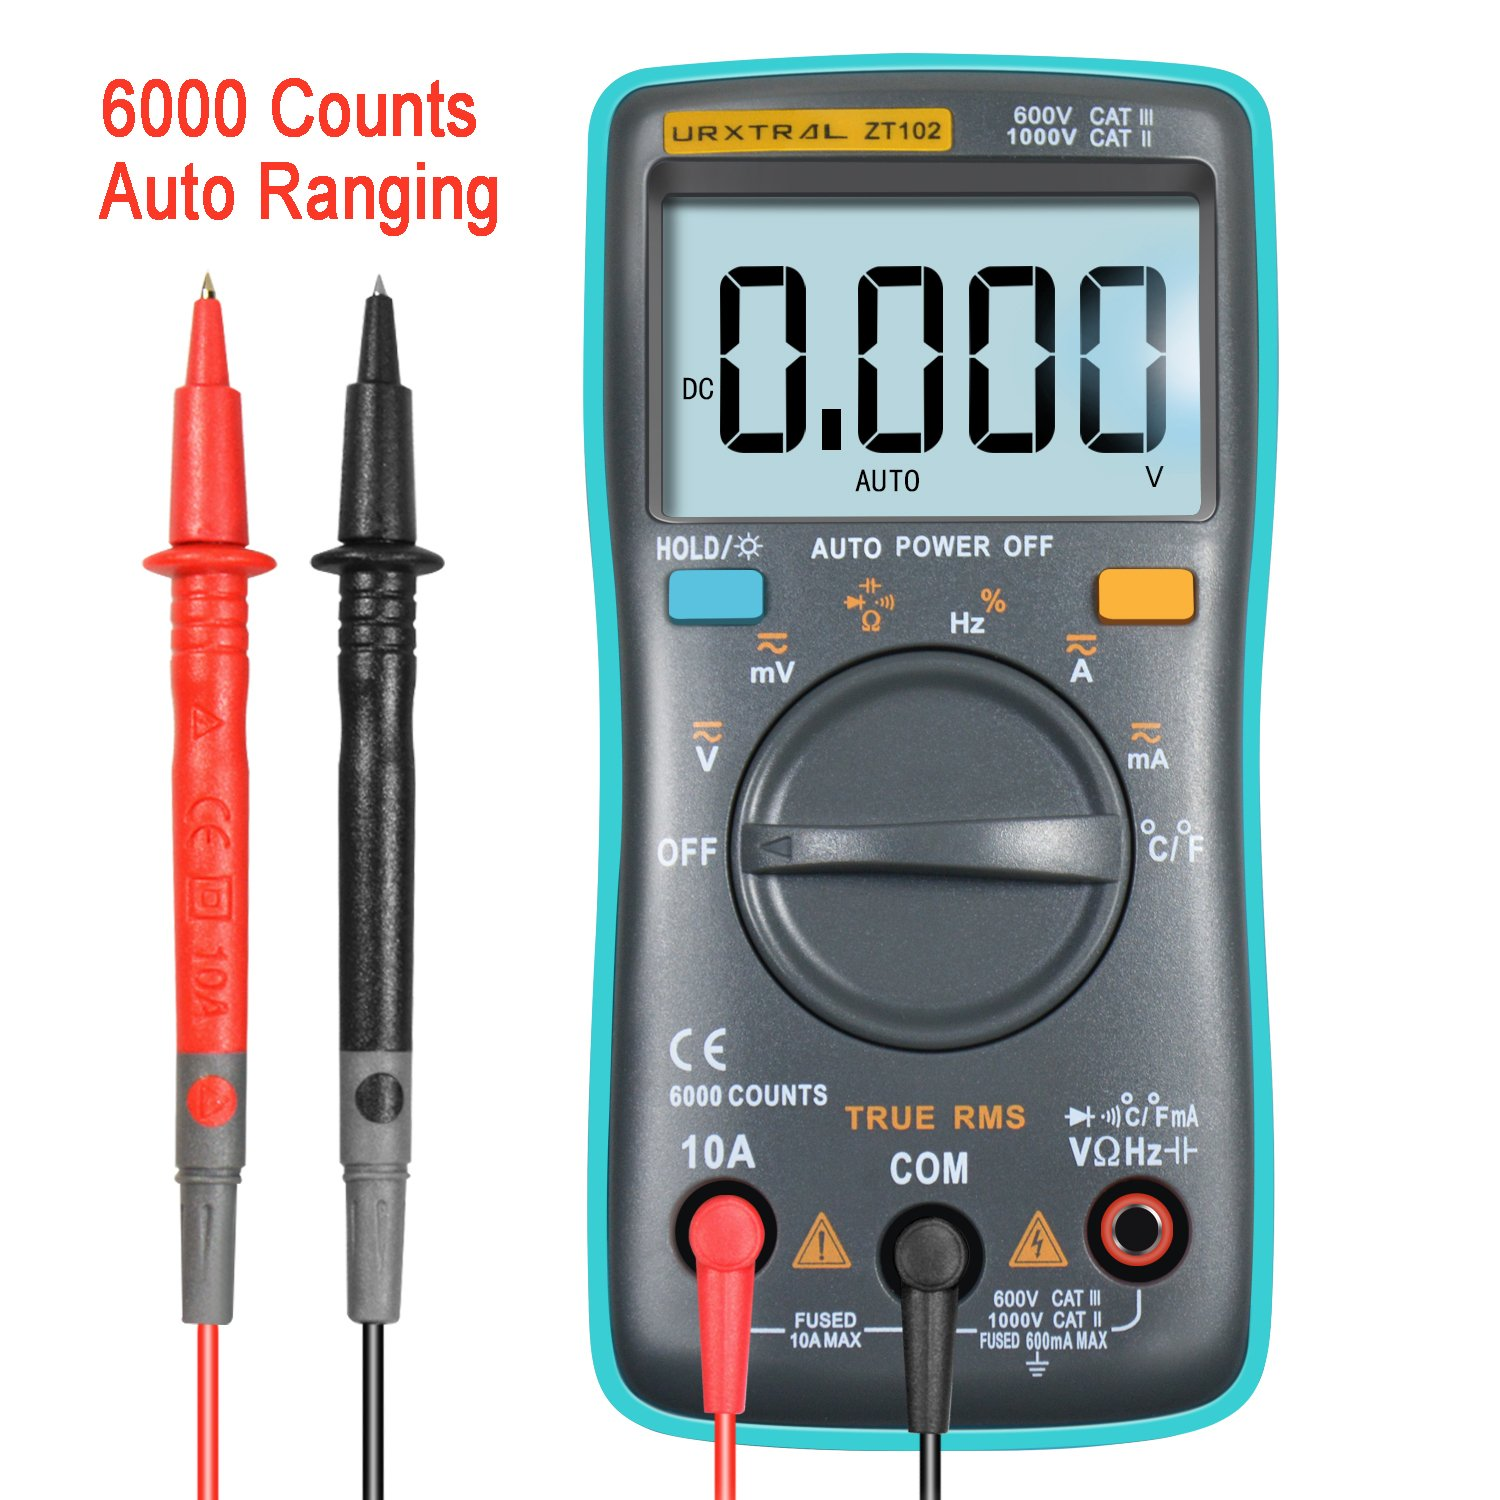 URXTRAL 6000 Counts Auto Ranging Digital Multimeter TRMS Multi Tester with Backlight Measure Temperature AC/DC/OHM/Hz/Temp/Duty Cycle/Continuity Tester ZT102